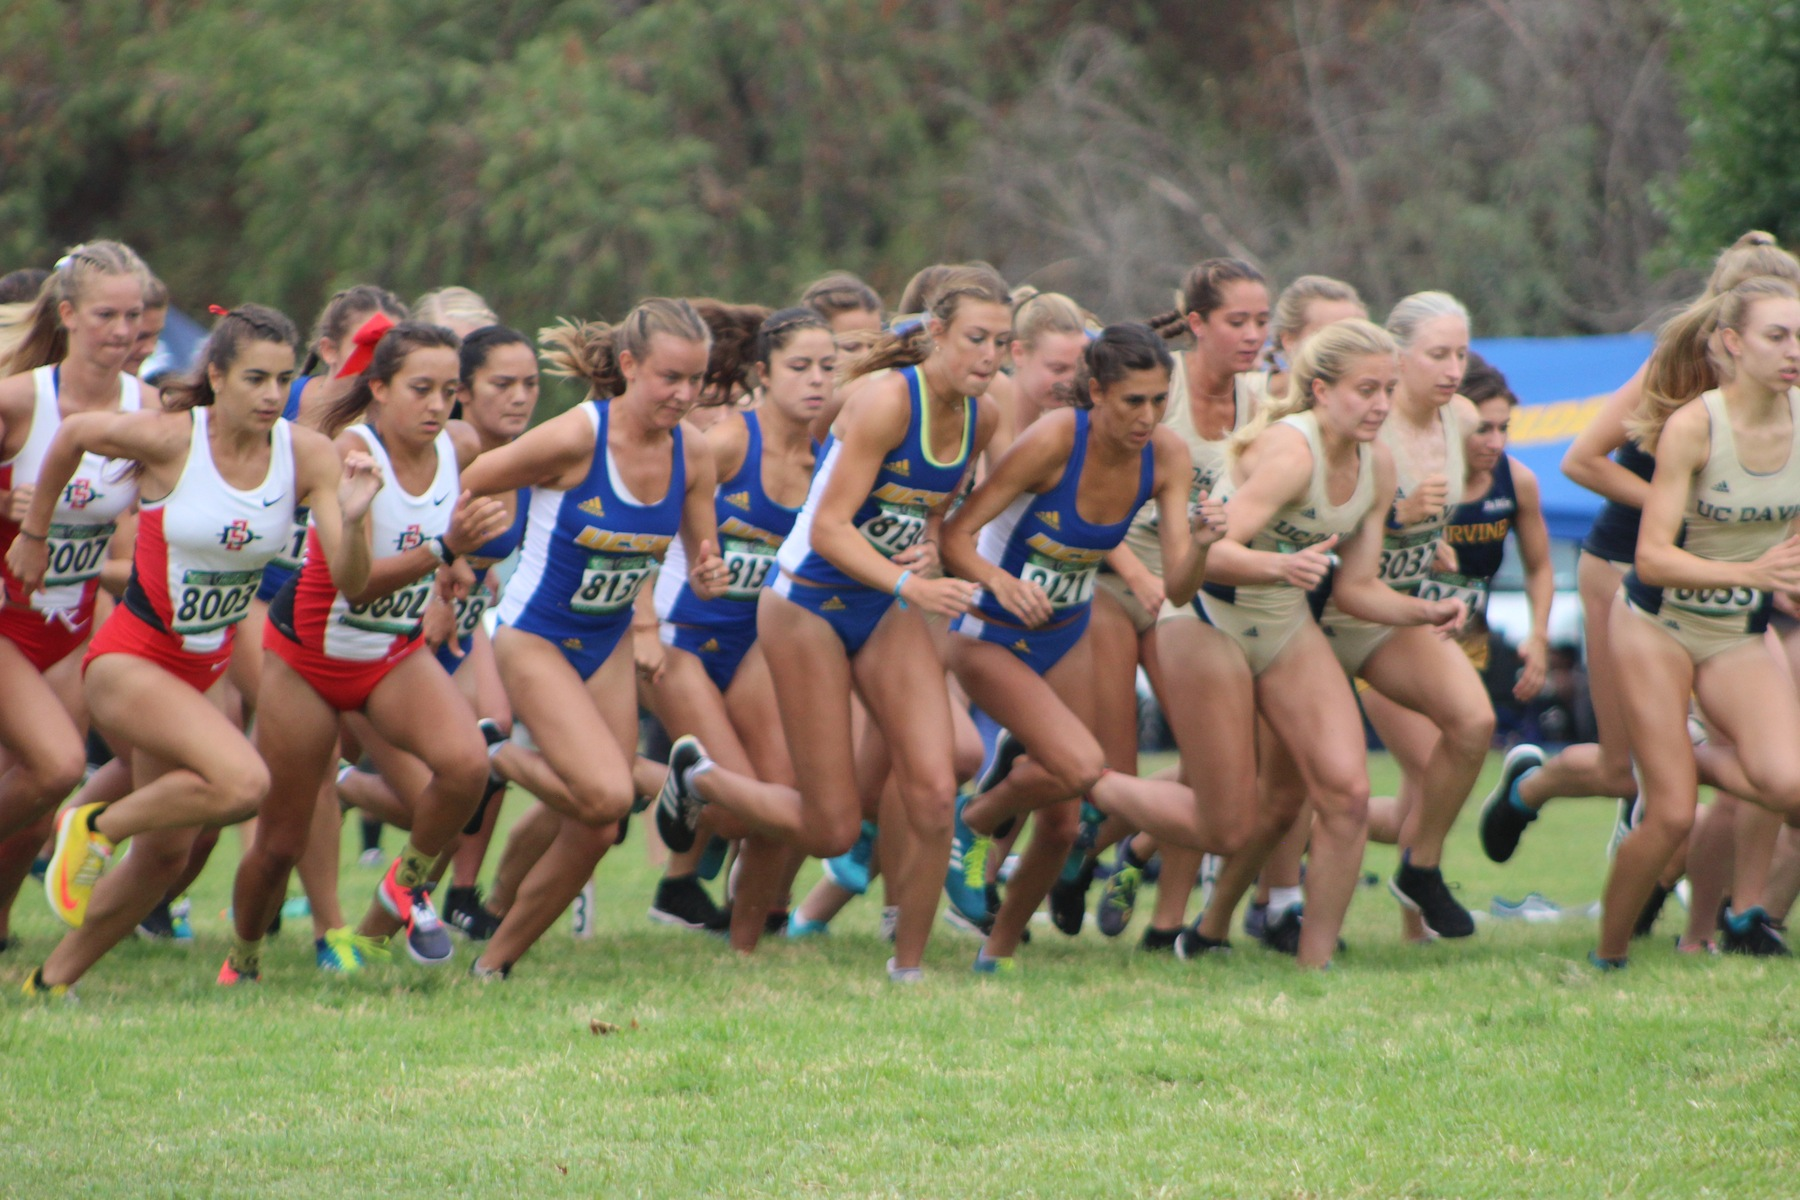 Gauchos Face Cal Poly and Cal State Fullerton at Home